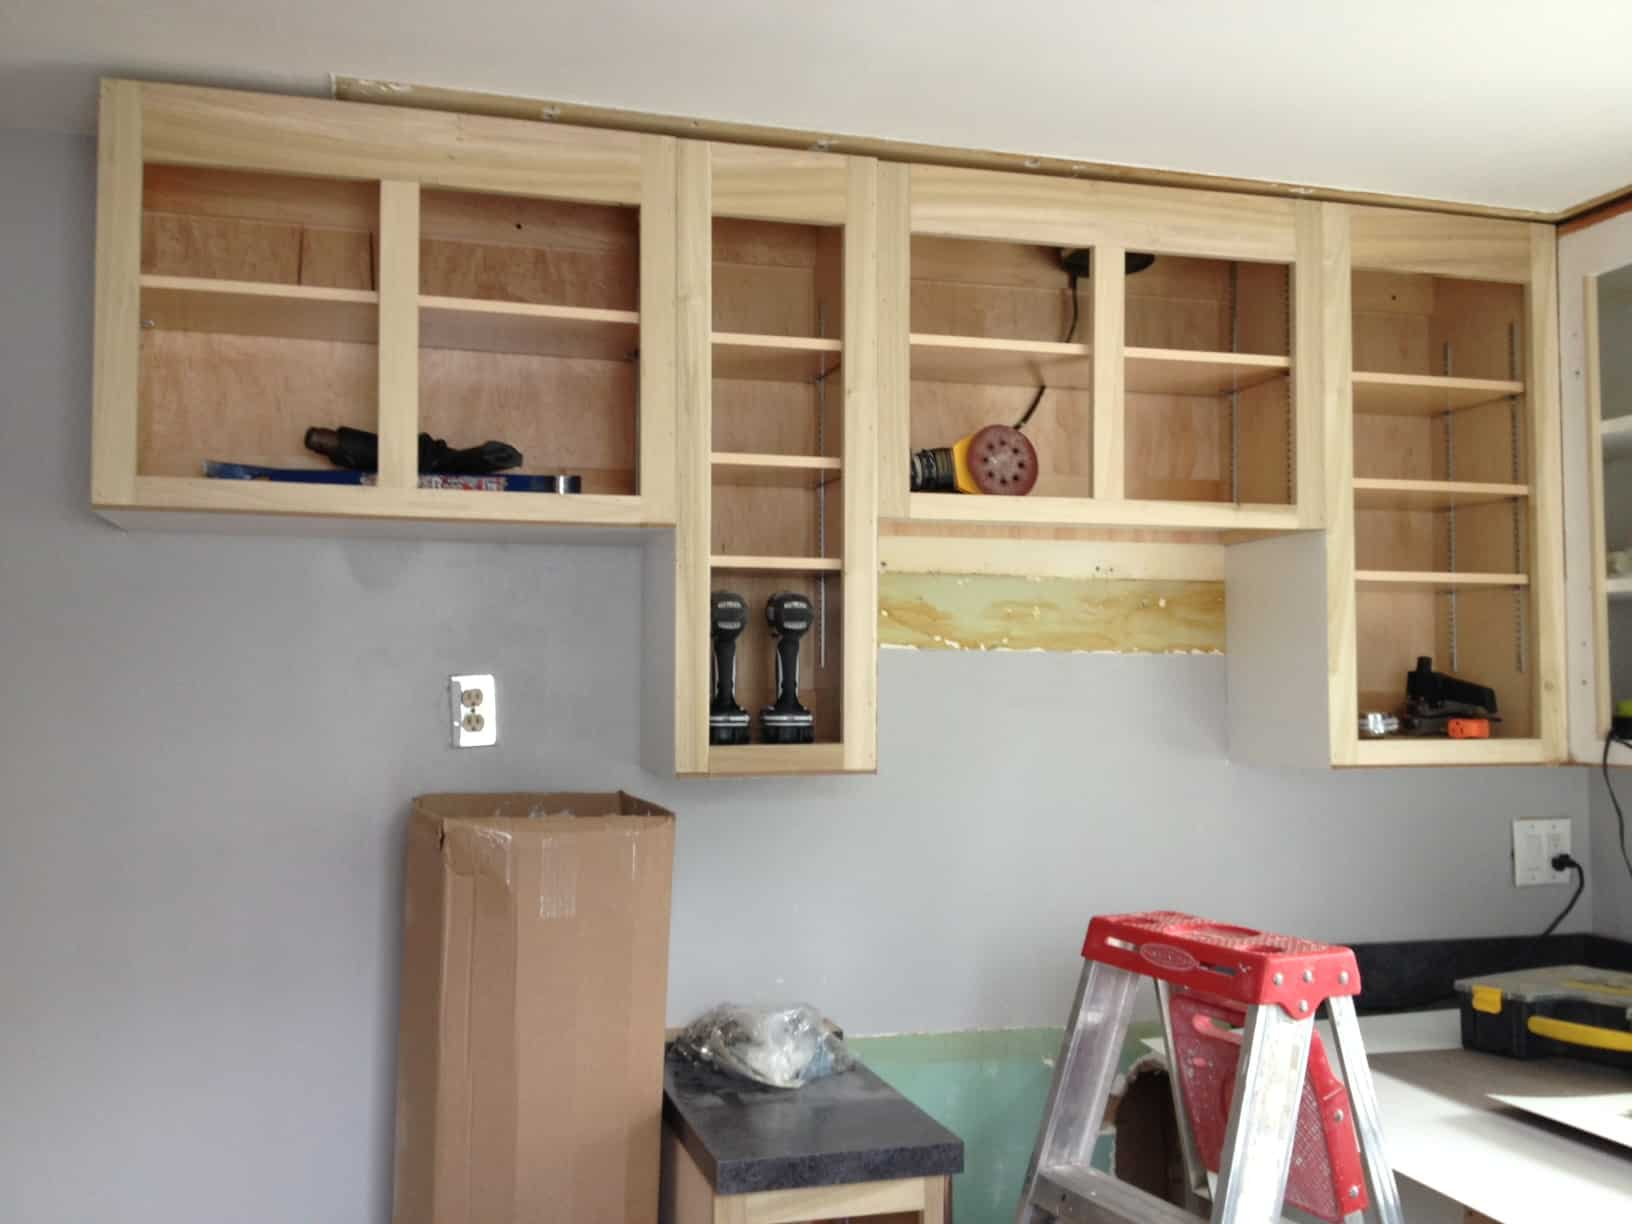 New wall of cabinets